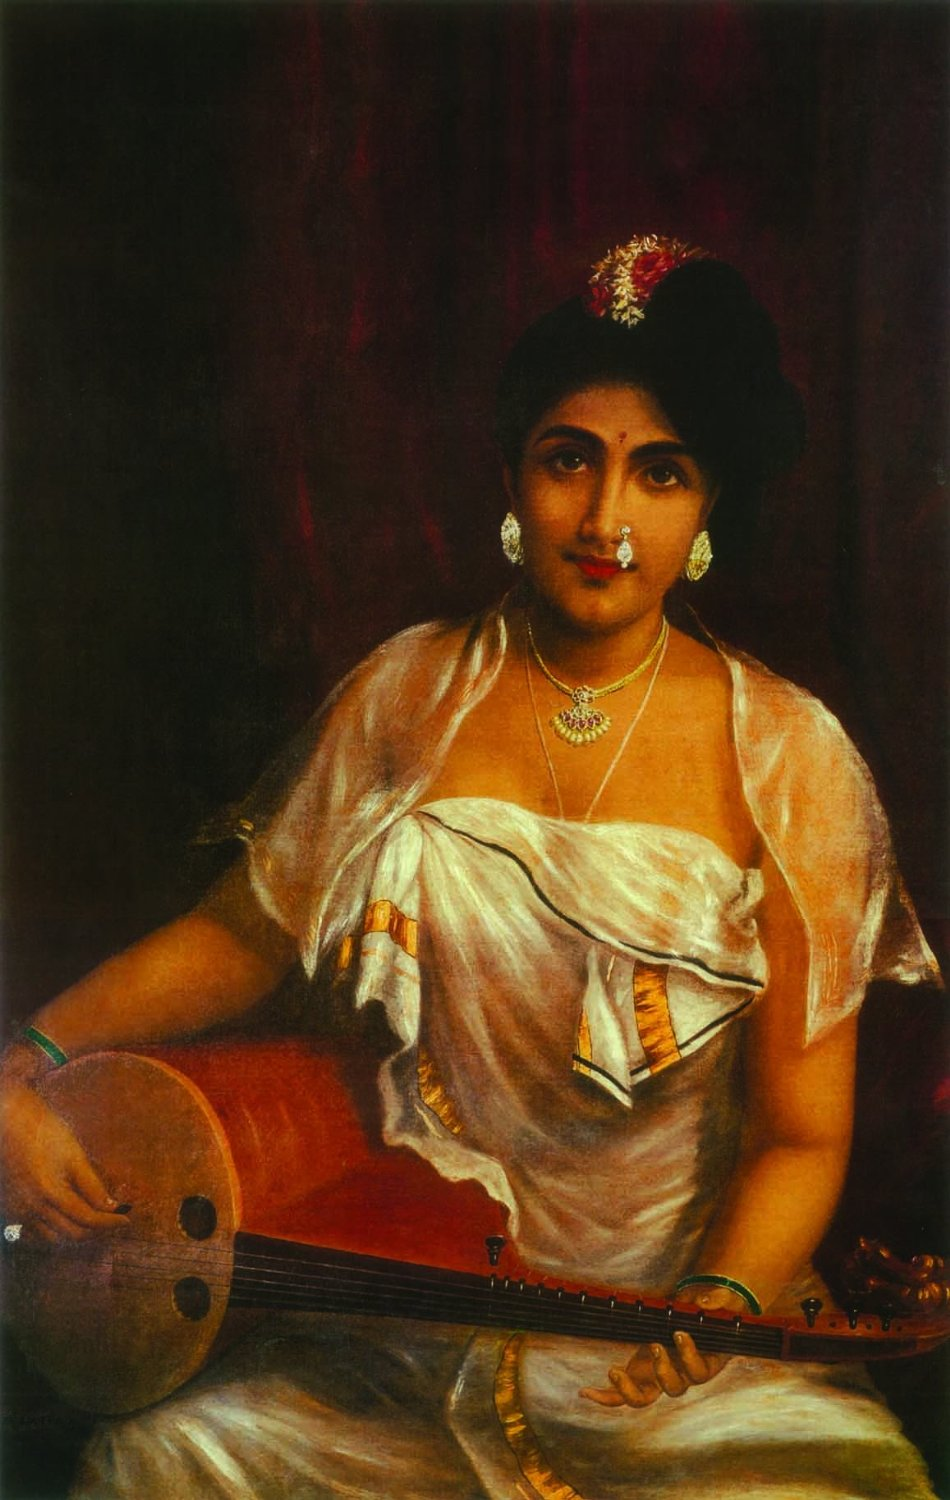 'Lady playing the Veena' - Raja Ravi Varma